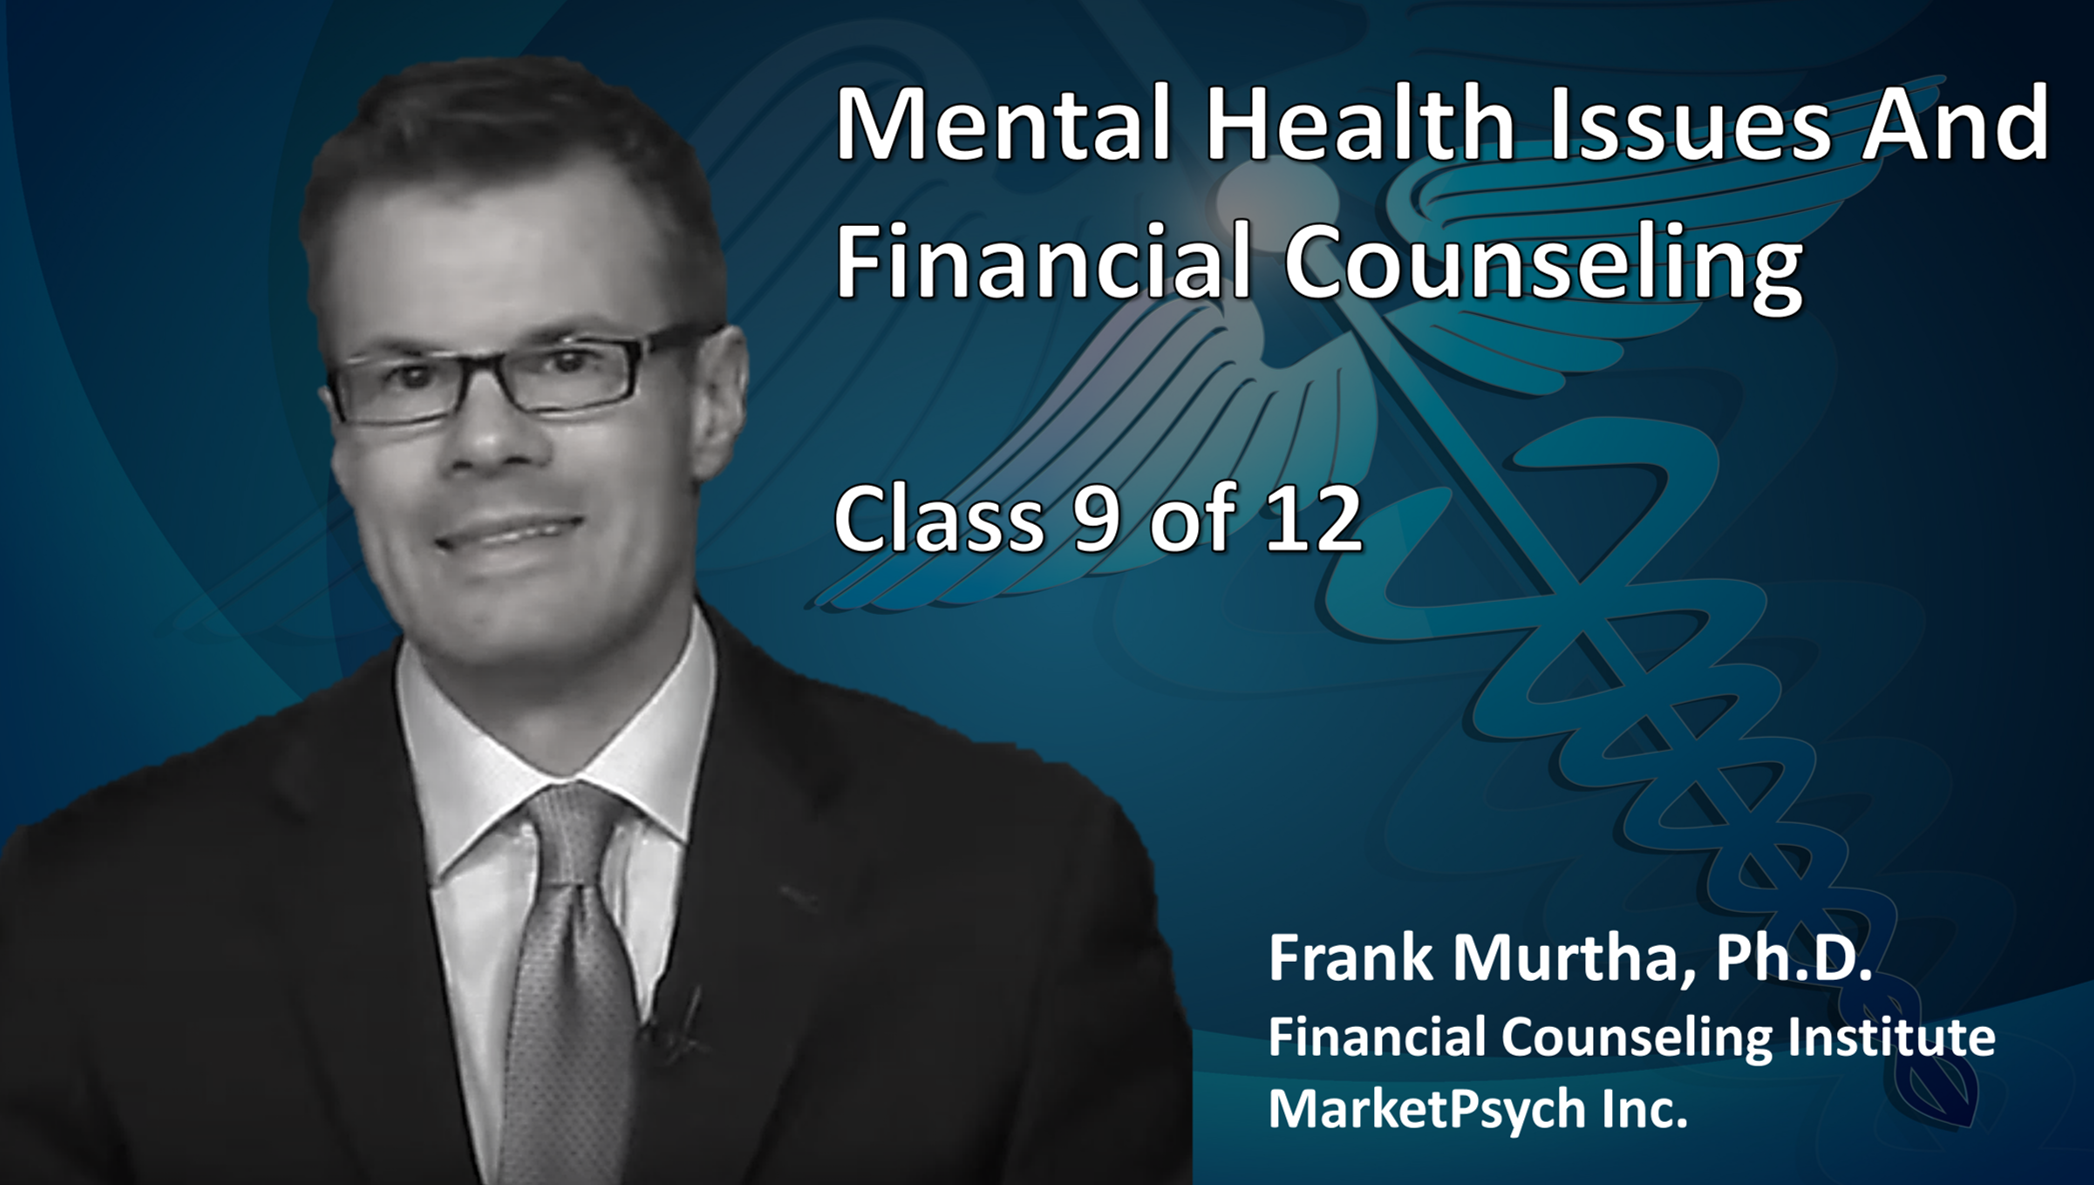 Mental Health Issues And Financial Counseling (1 Credit)